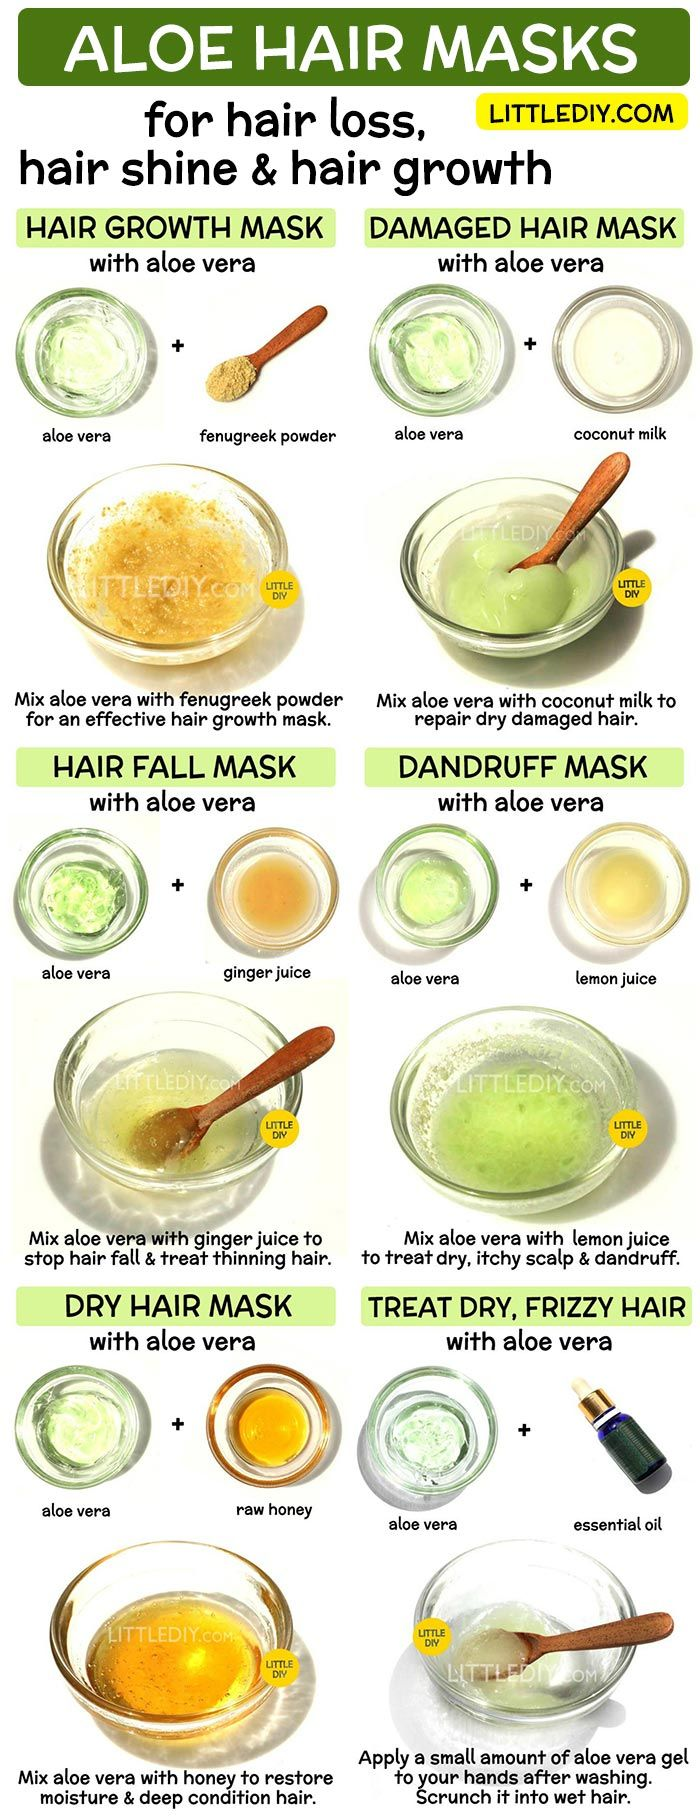 ALOE VERA HAIR MASKS for hair growth, hair loss and shine #naturalhaircareproducts